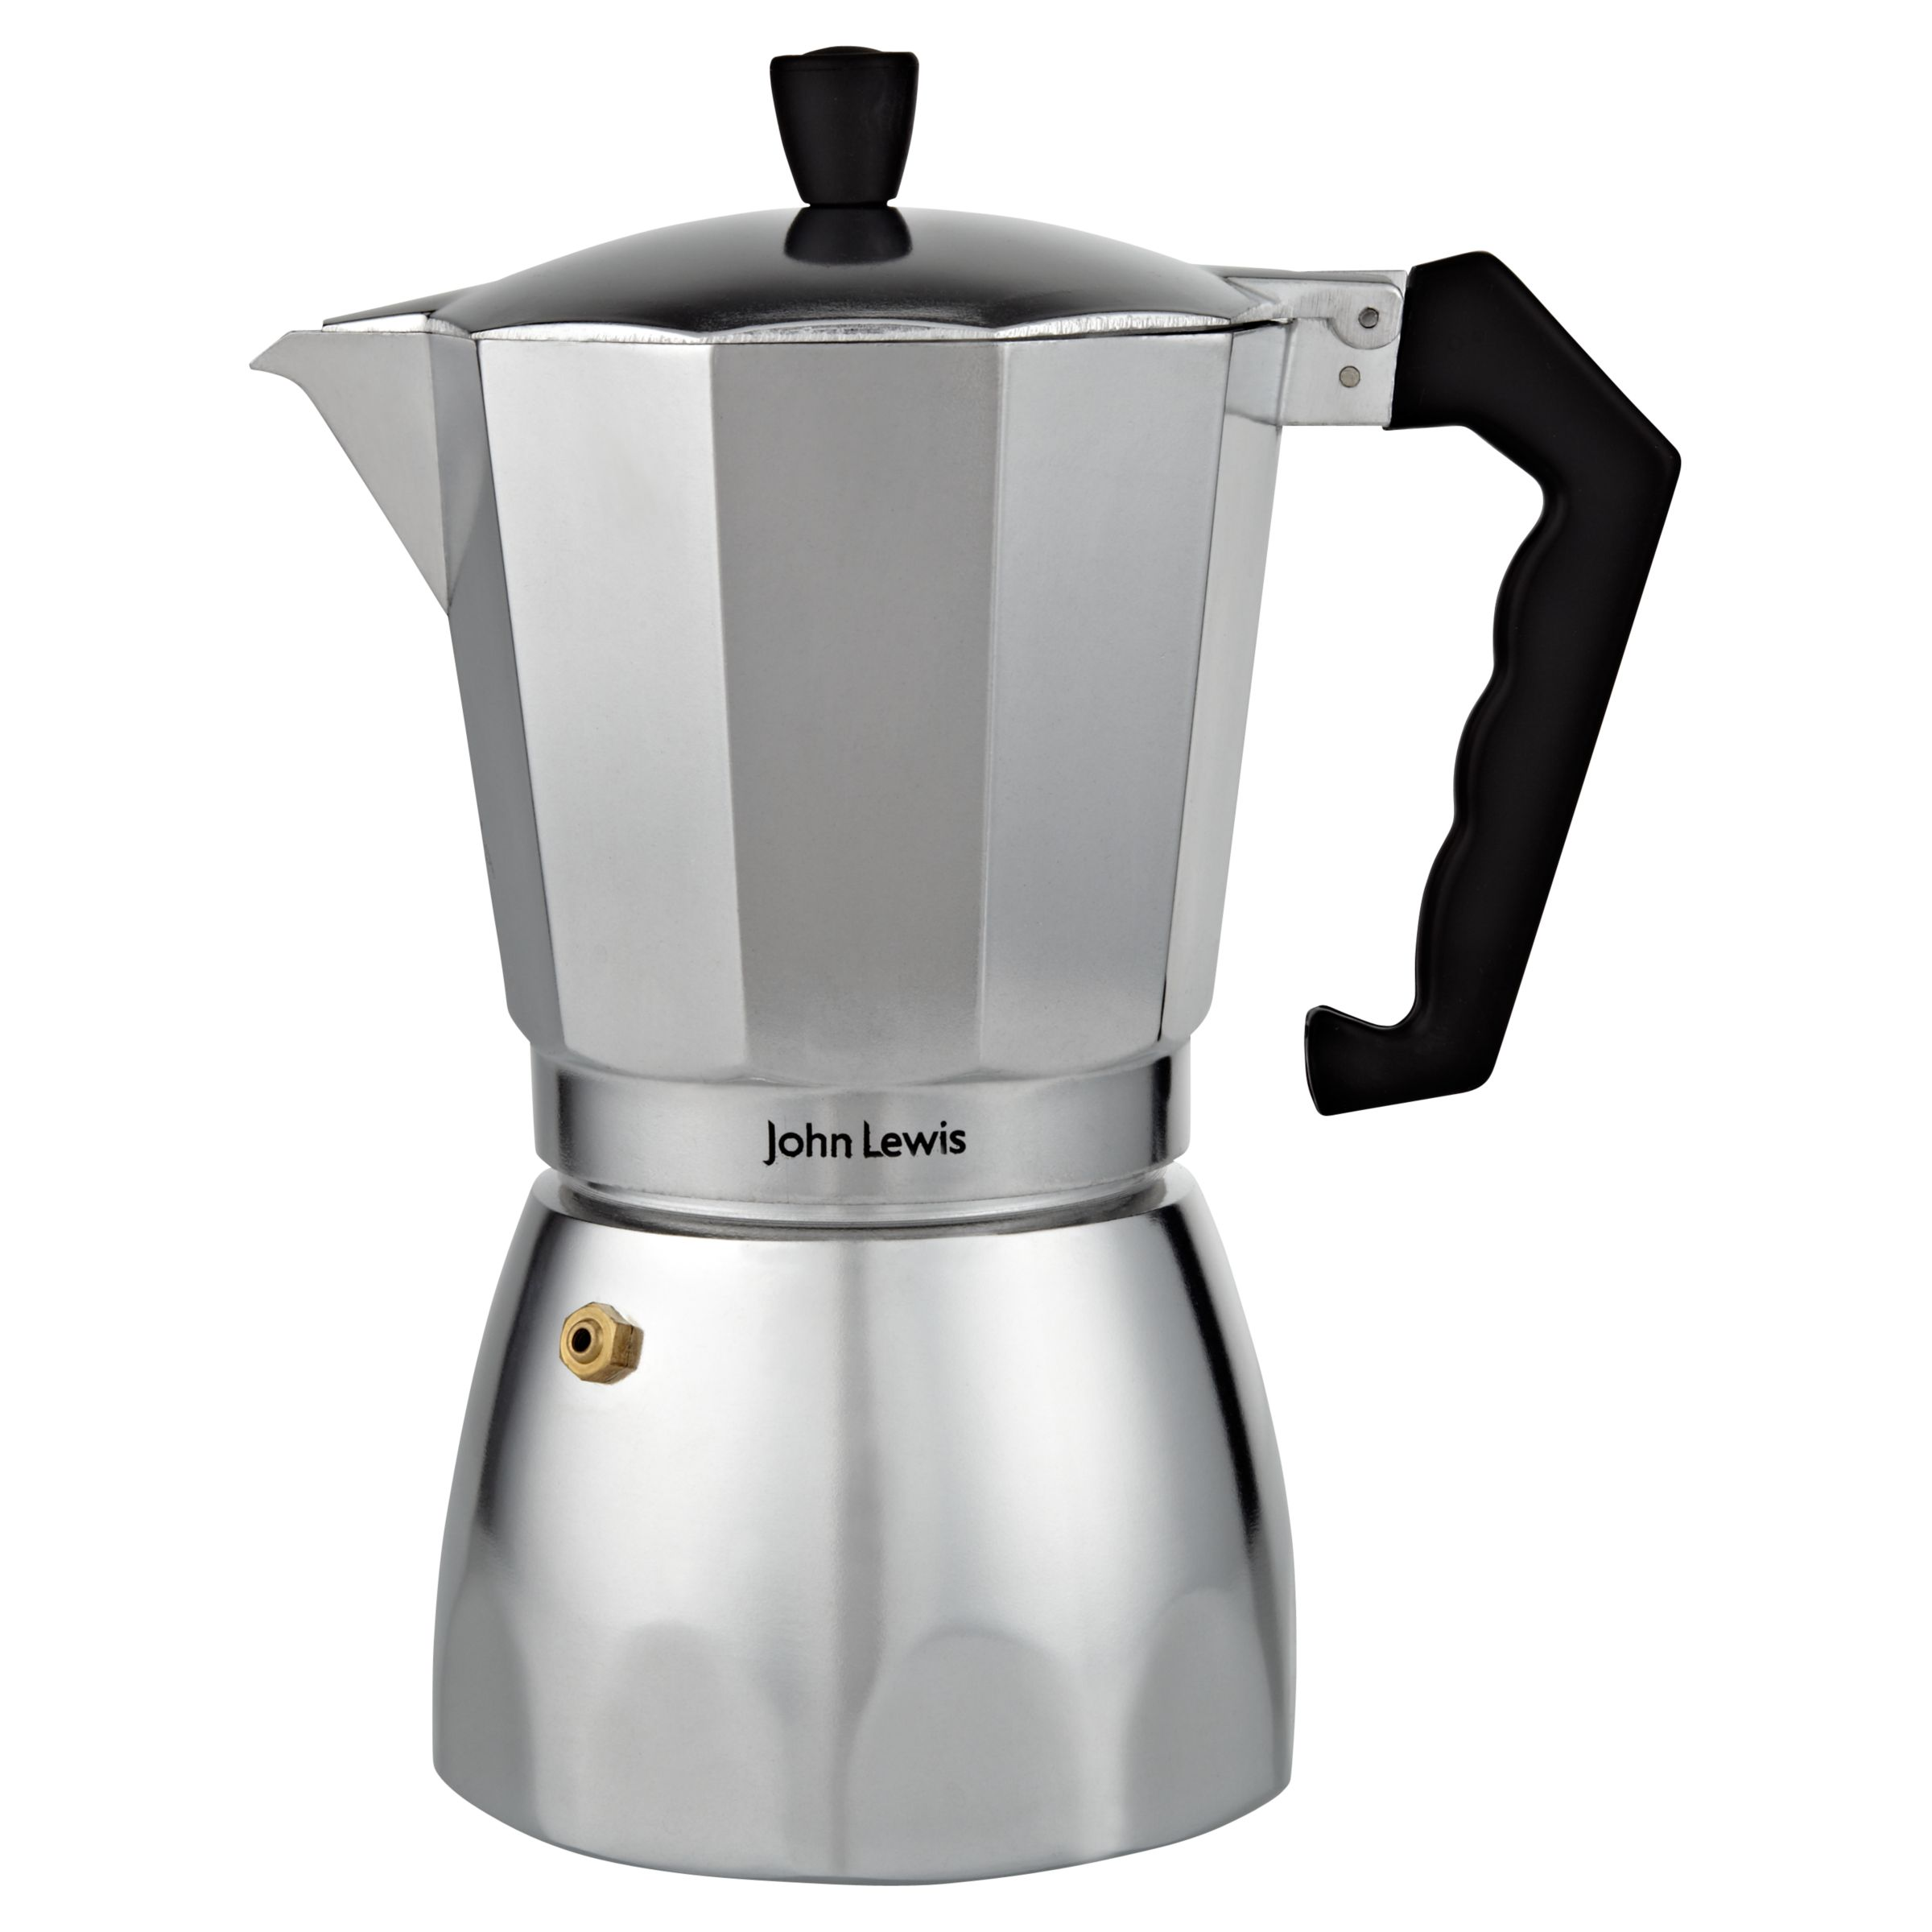 Buy cheap Italian coffee maker - compare Coffee Makers prices for best UK deals